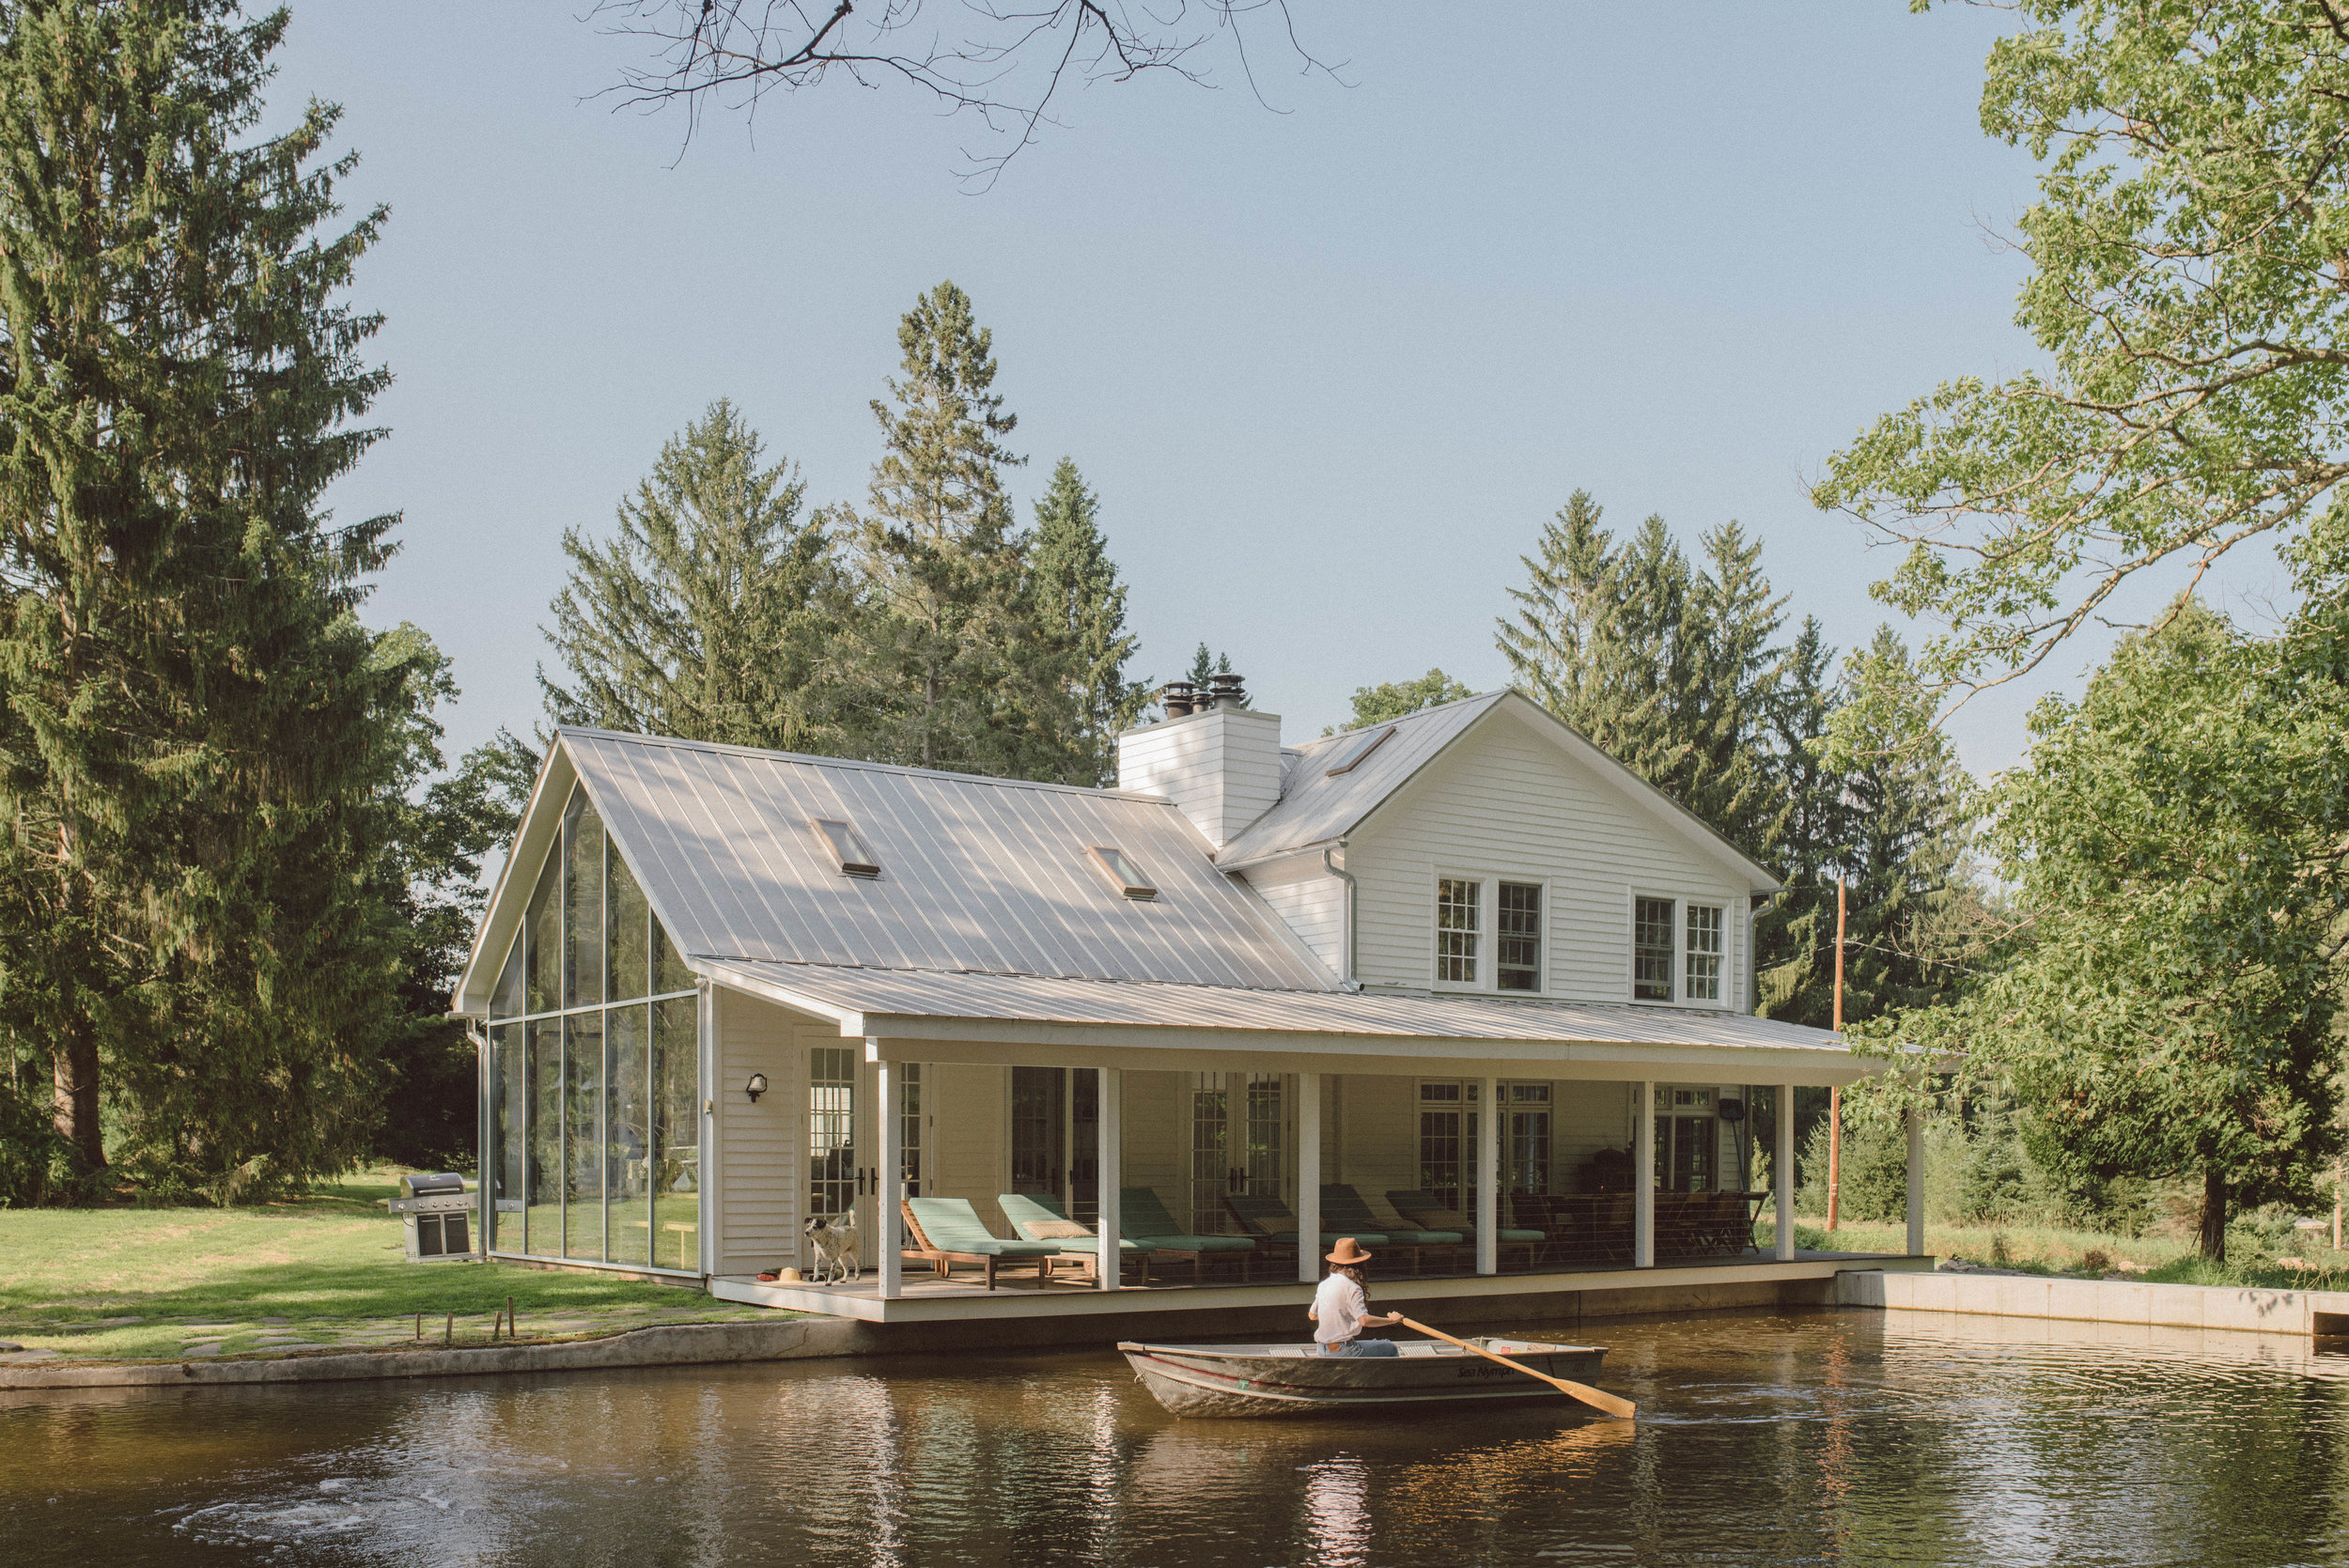 Floating-farmhouse-2018-summer-content-lifestyle-REV1-0071.jpg